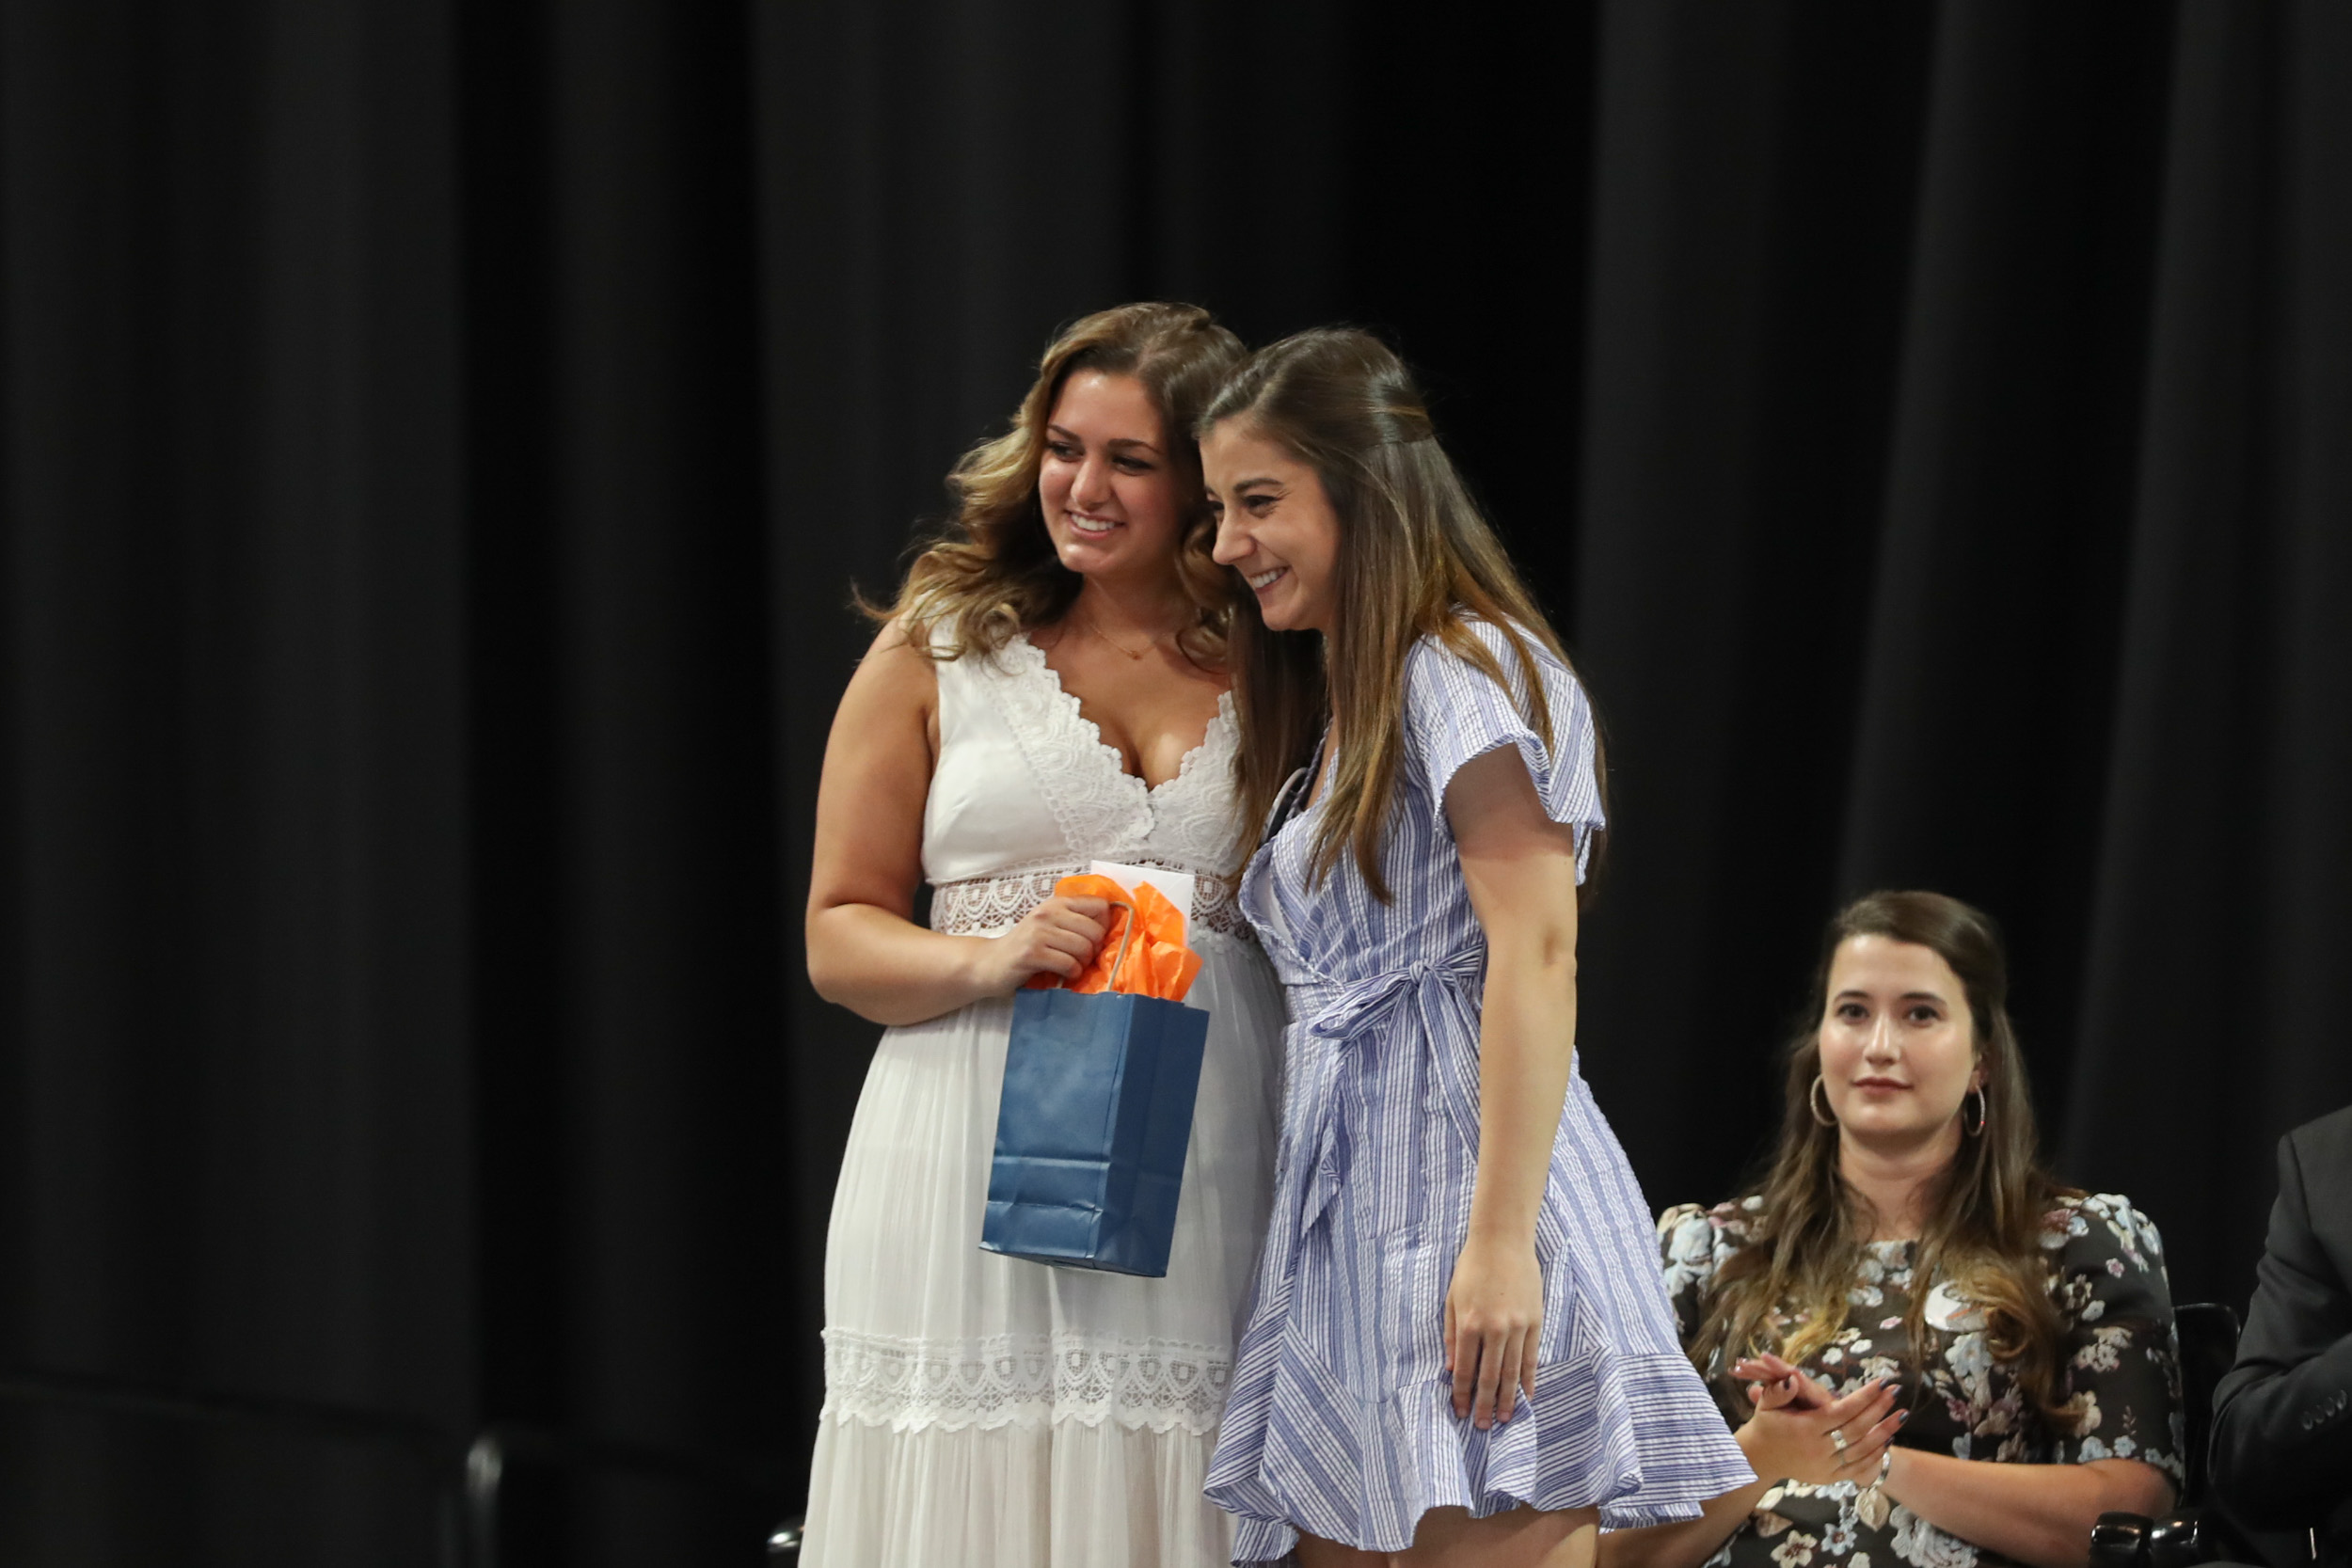 The Class of 2019, represented by trustee Mariana Brazao, right, presented its Class Award for Community Service to anthropology major Corinne Singh.